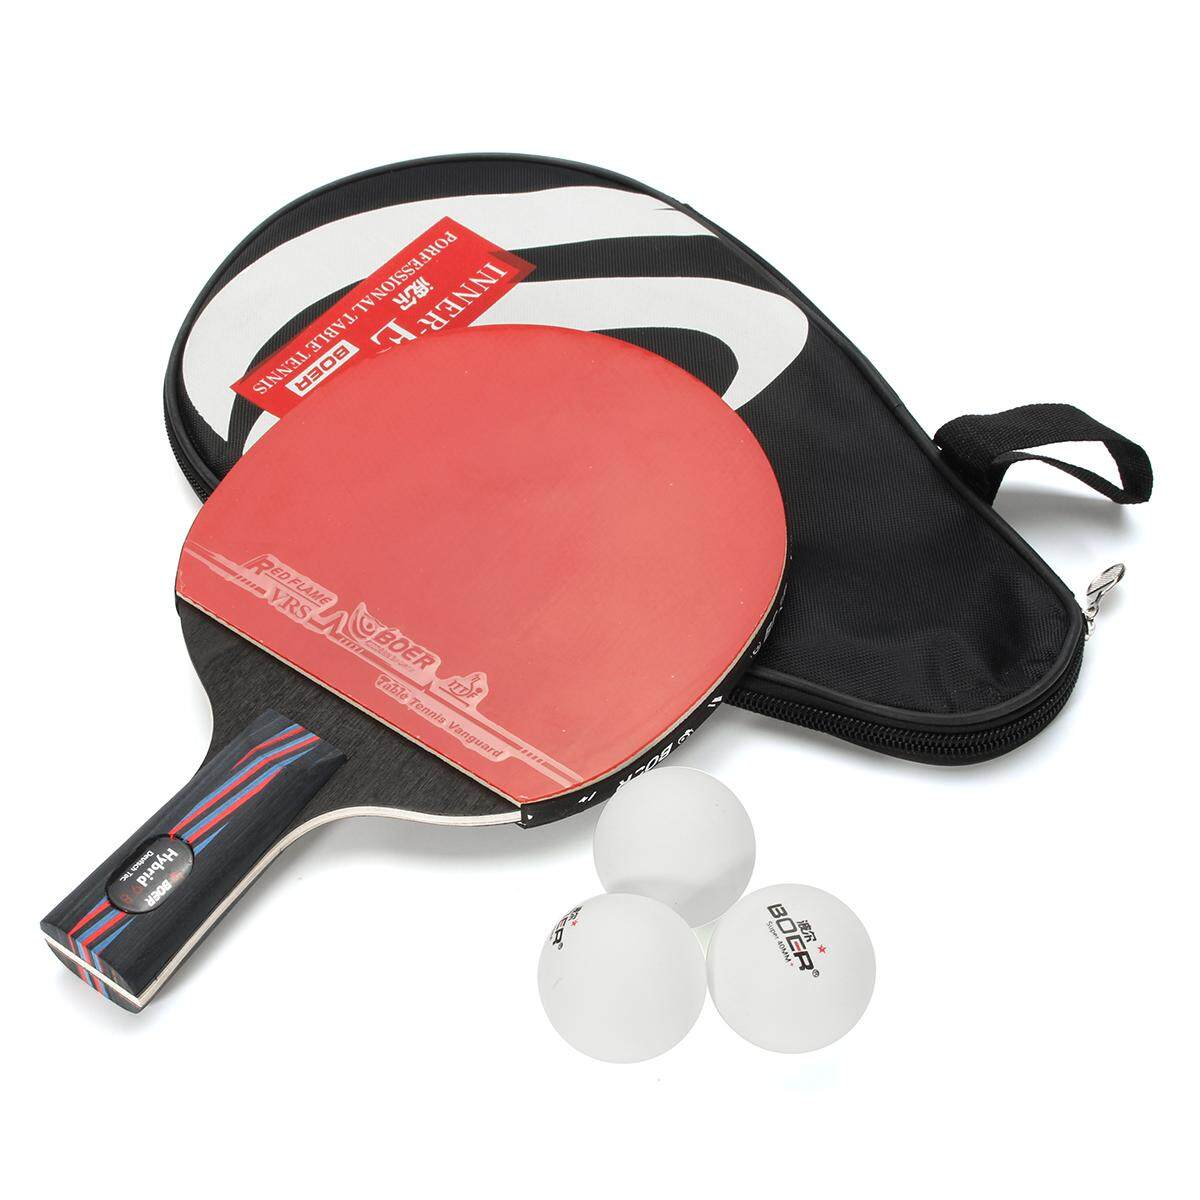 DHS DOUBLE HAPPINESS 6002A TABLE TENNIS LONG STARS PONG PING RACKET HANDLE